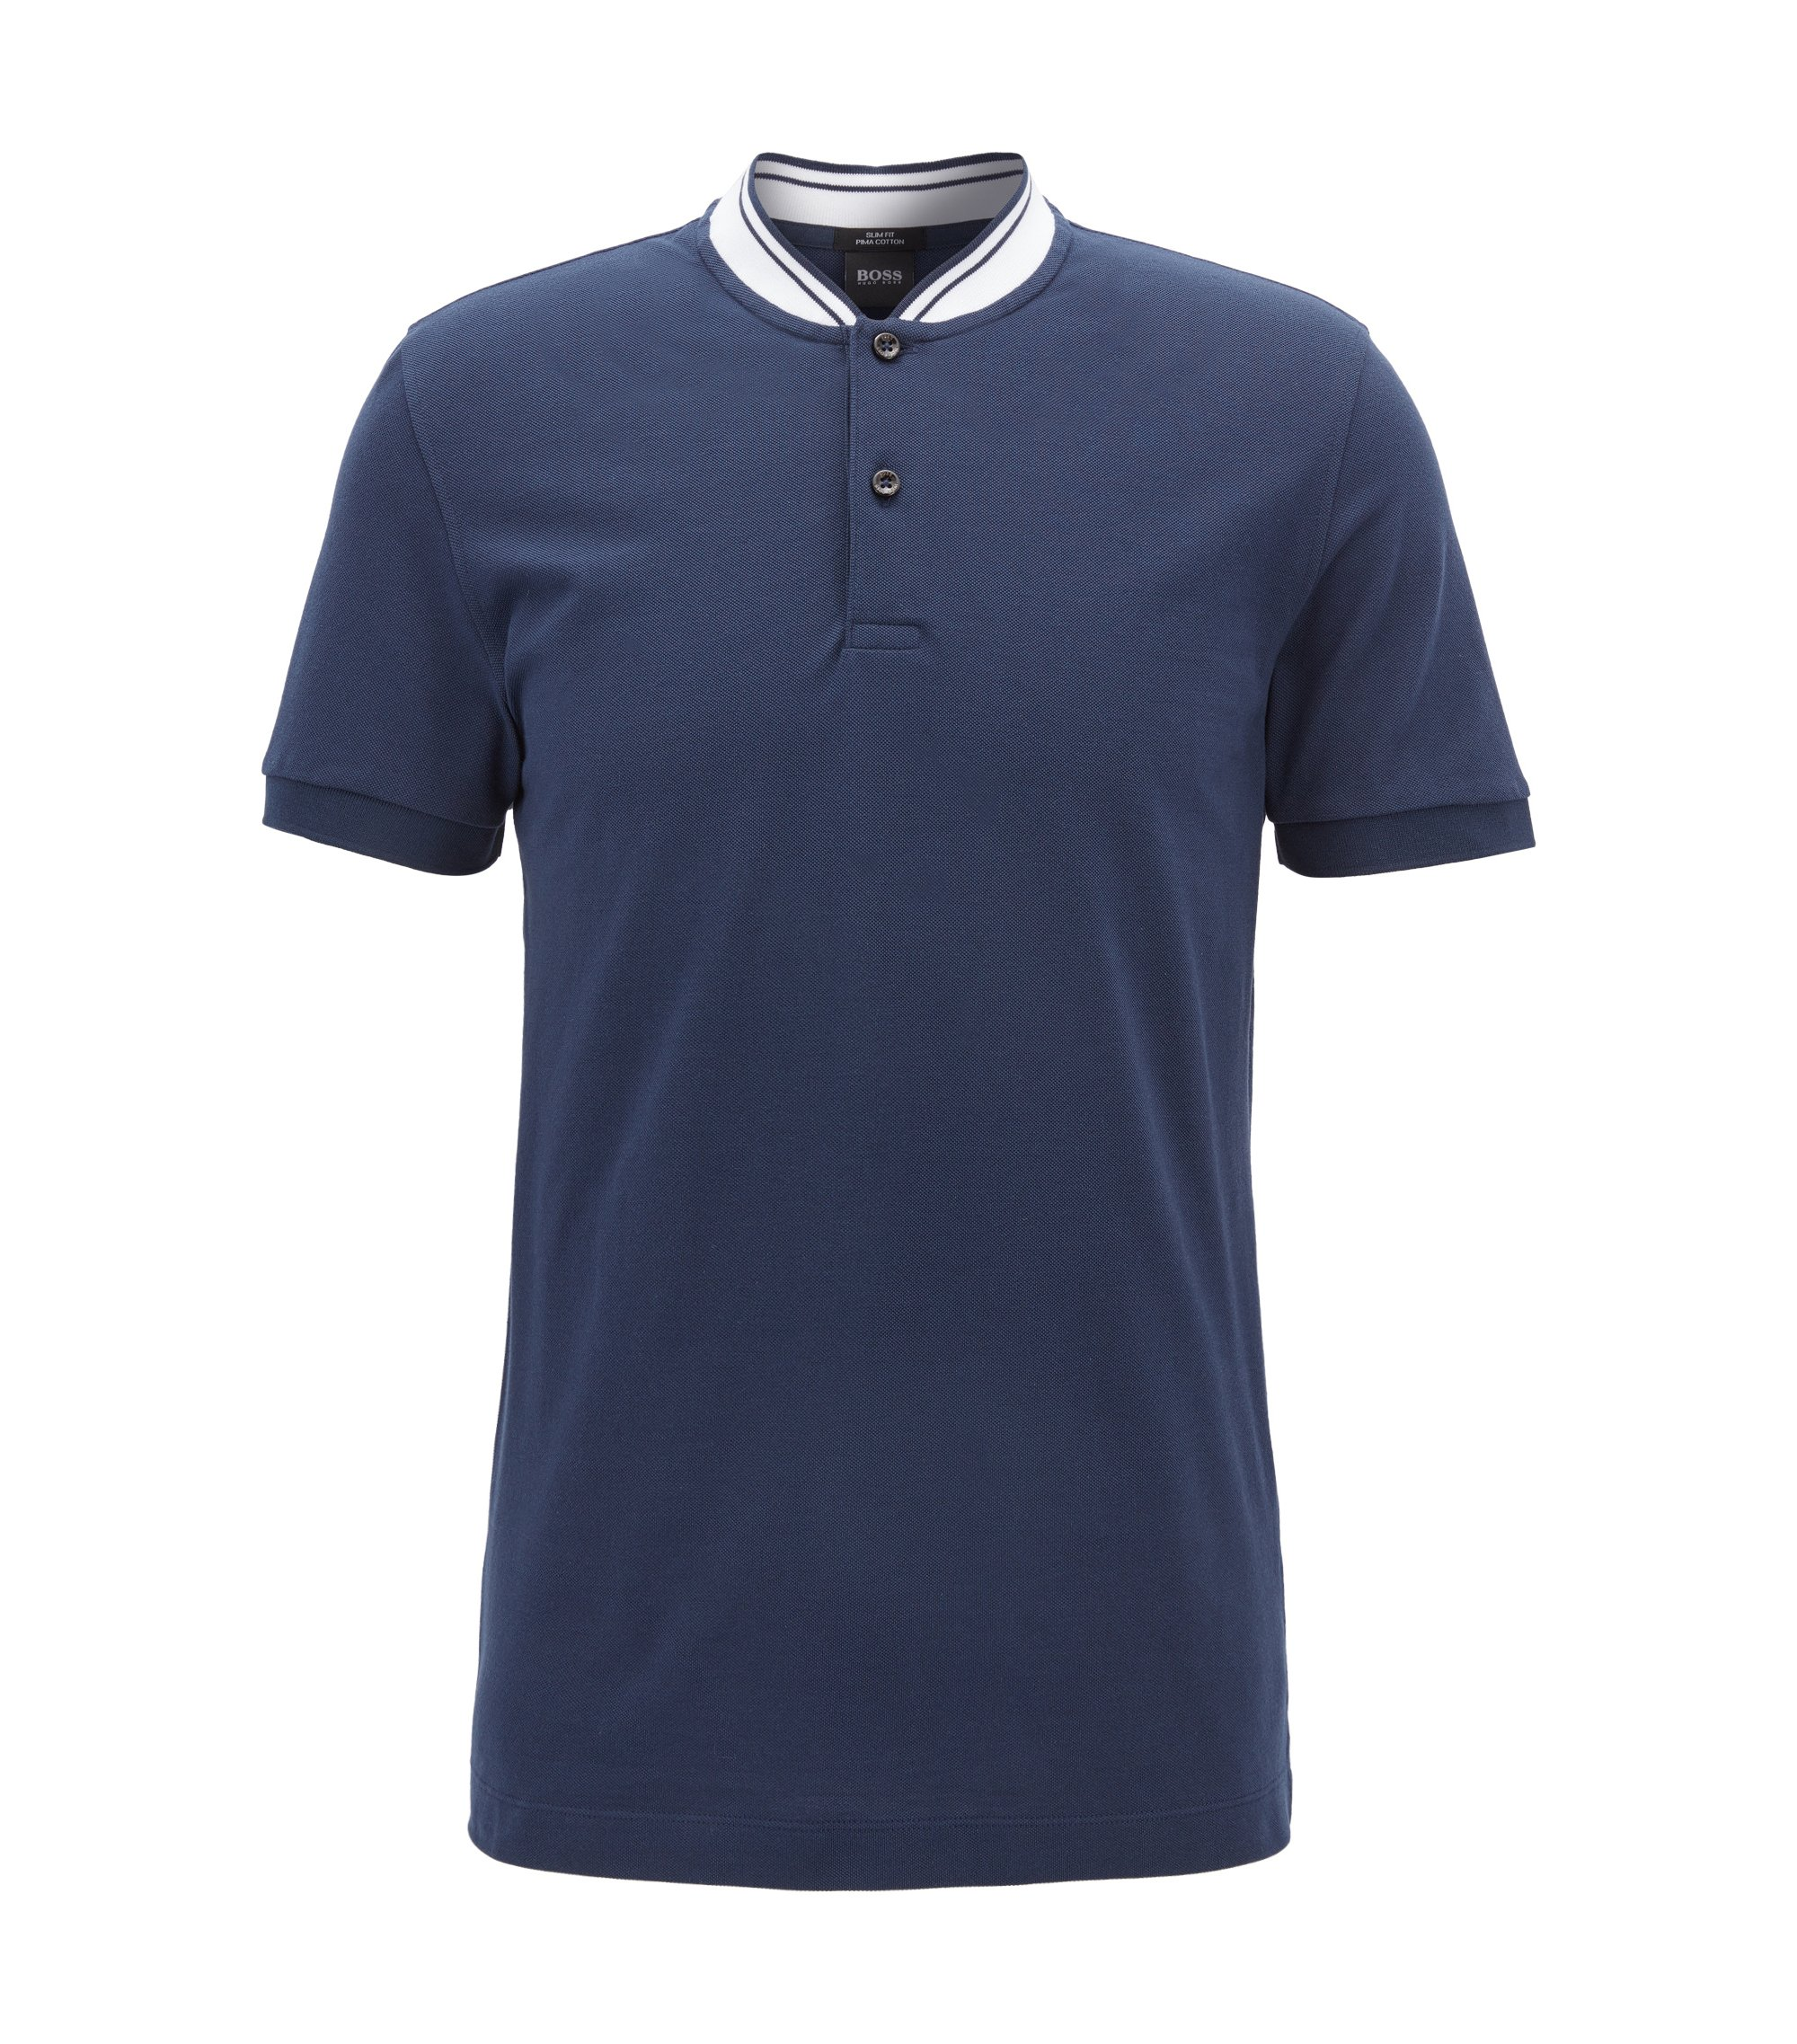 Piqué-cotton Henley shirt in a slim fit , Dark Blue